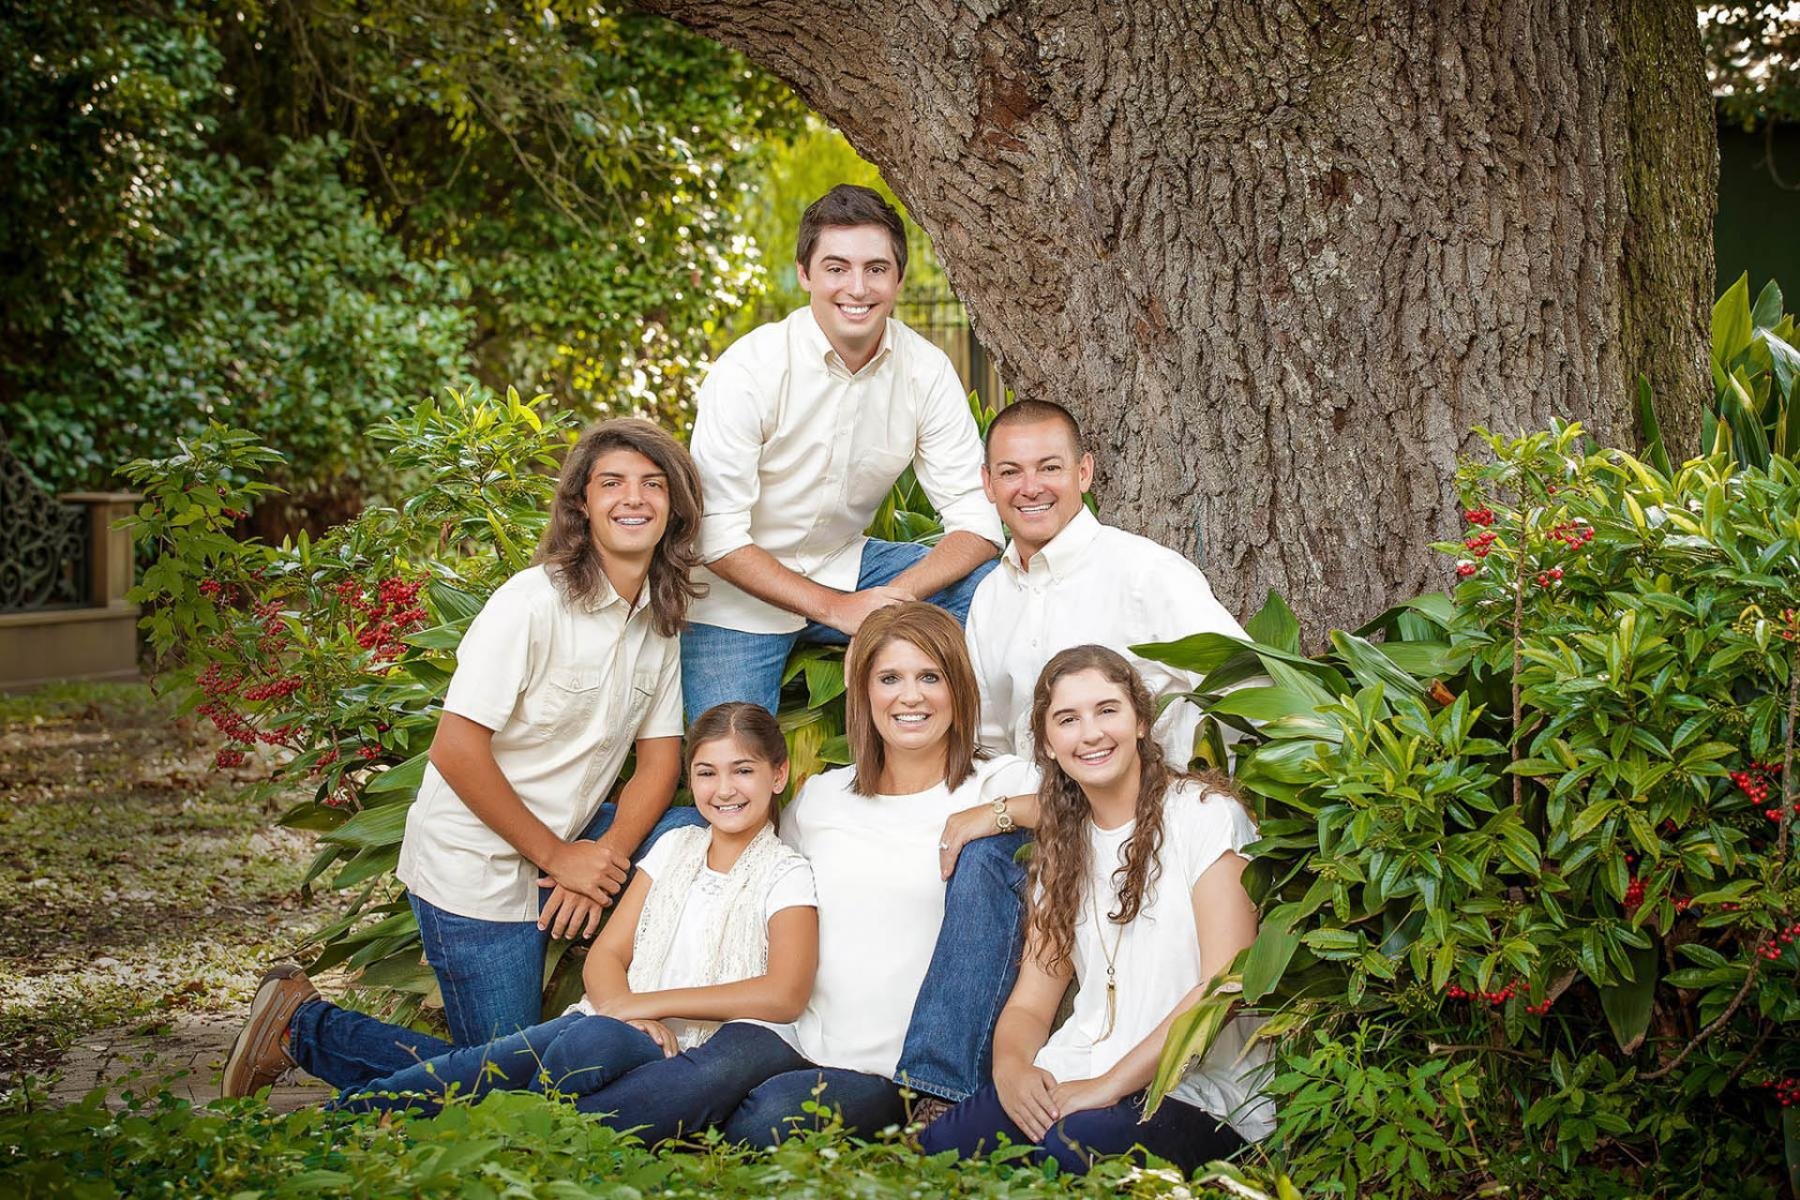 Family pictures are the corner stone of experienced professional photography. The Lighting and the style are what we dob use. Our goal is to create an image that will be on your wall for many years. We have photographed thousands of families in the Houma, Thibodaux, and Galliano area.